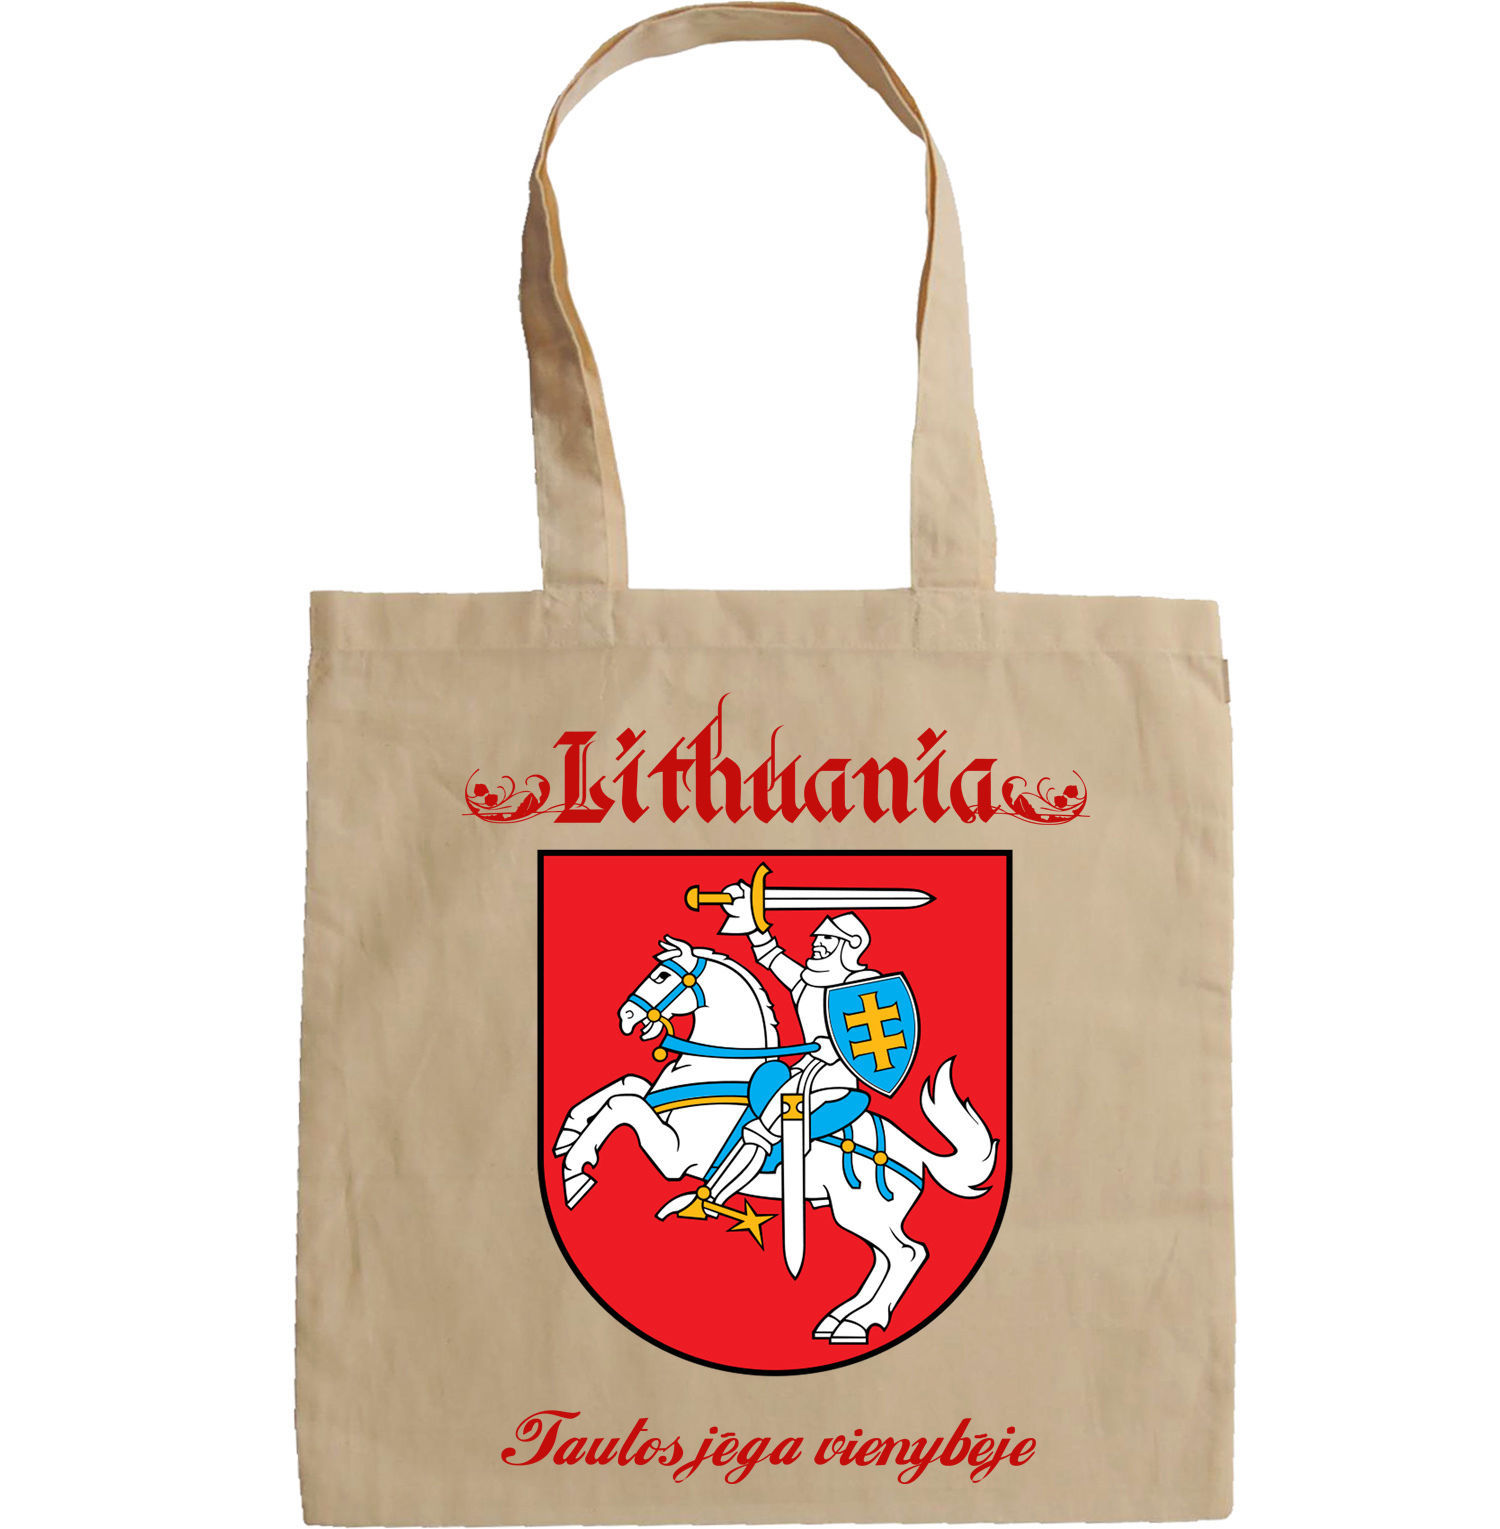 LITHUANIA COAT OF ARMS - NEW AMAZING GRAPHIC HAND BAG/TOTE BAG